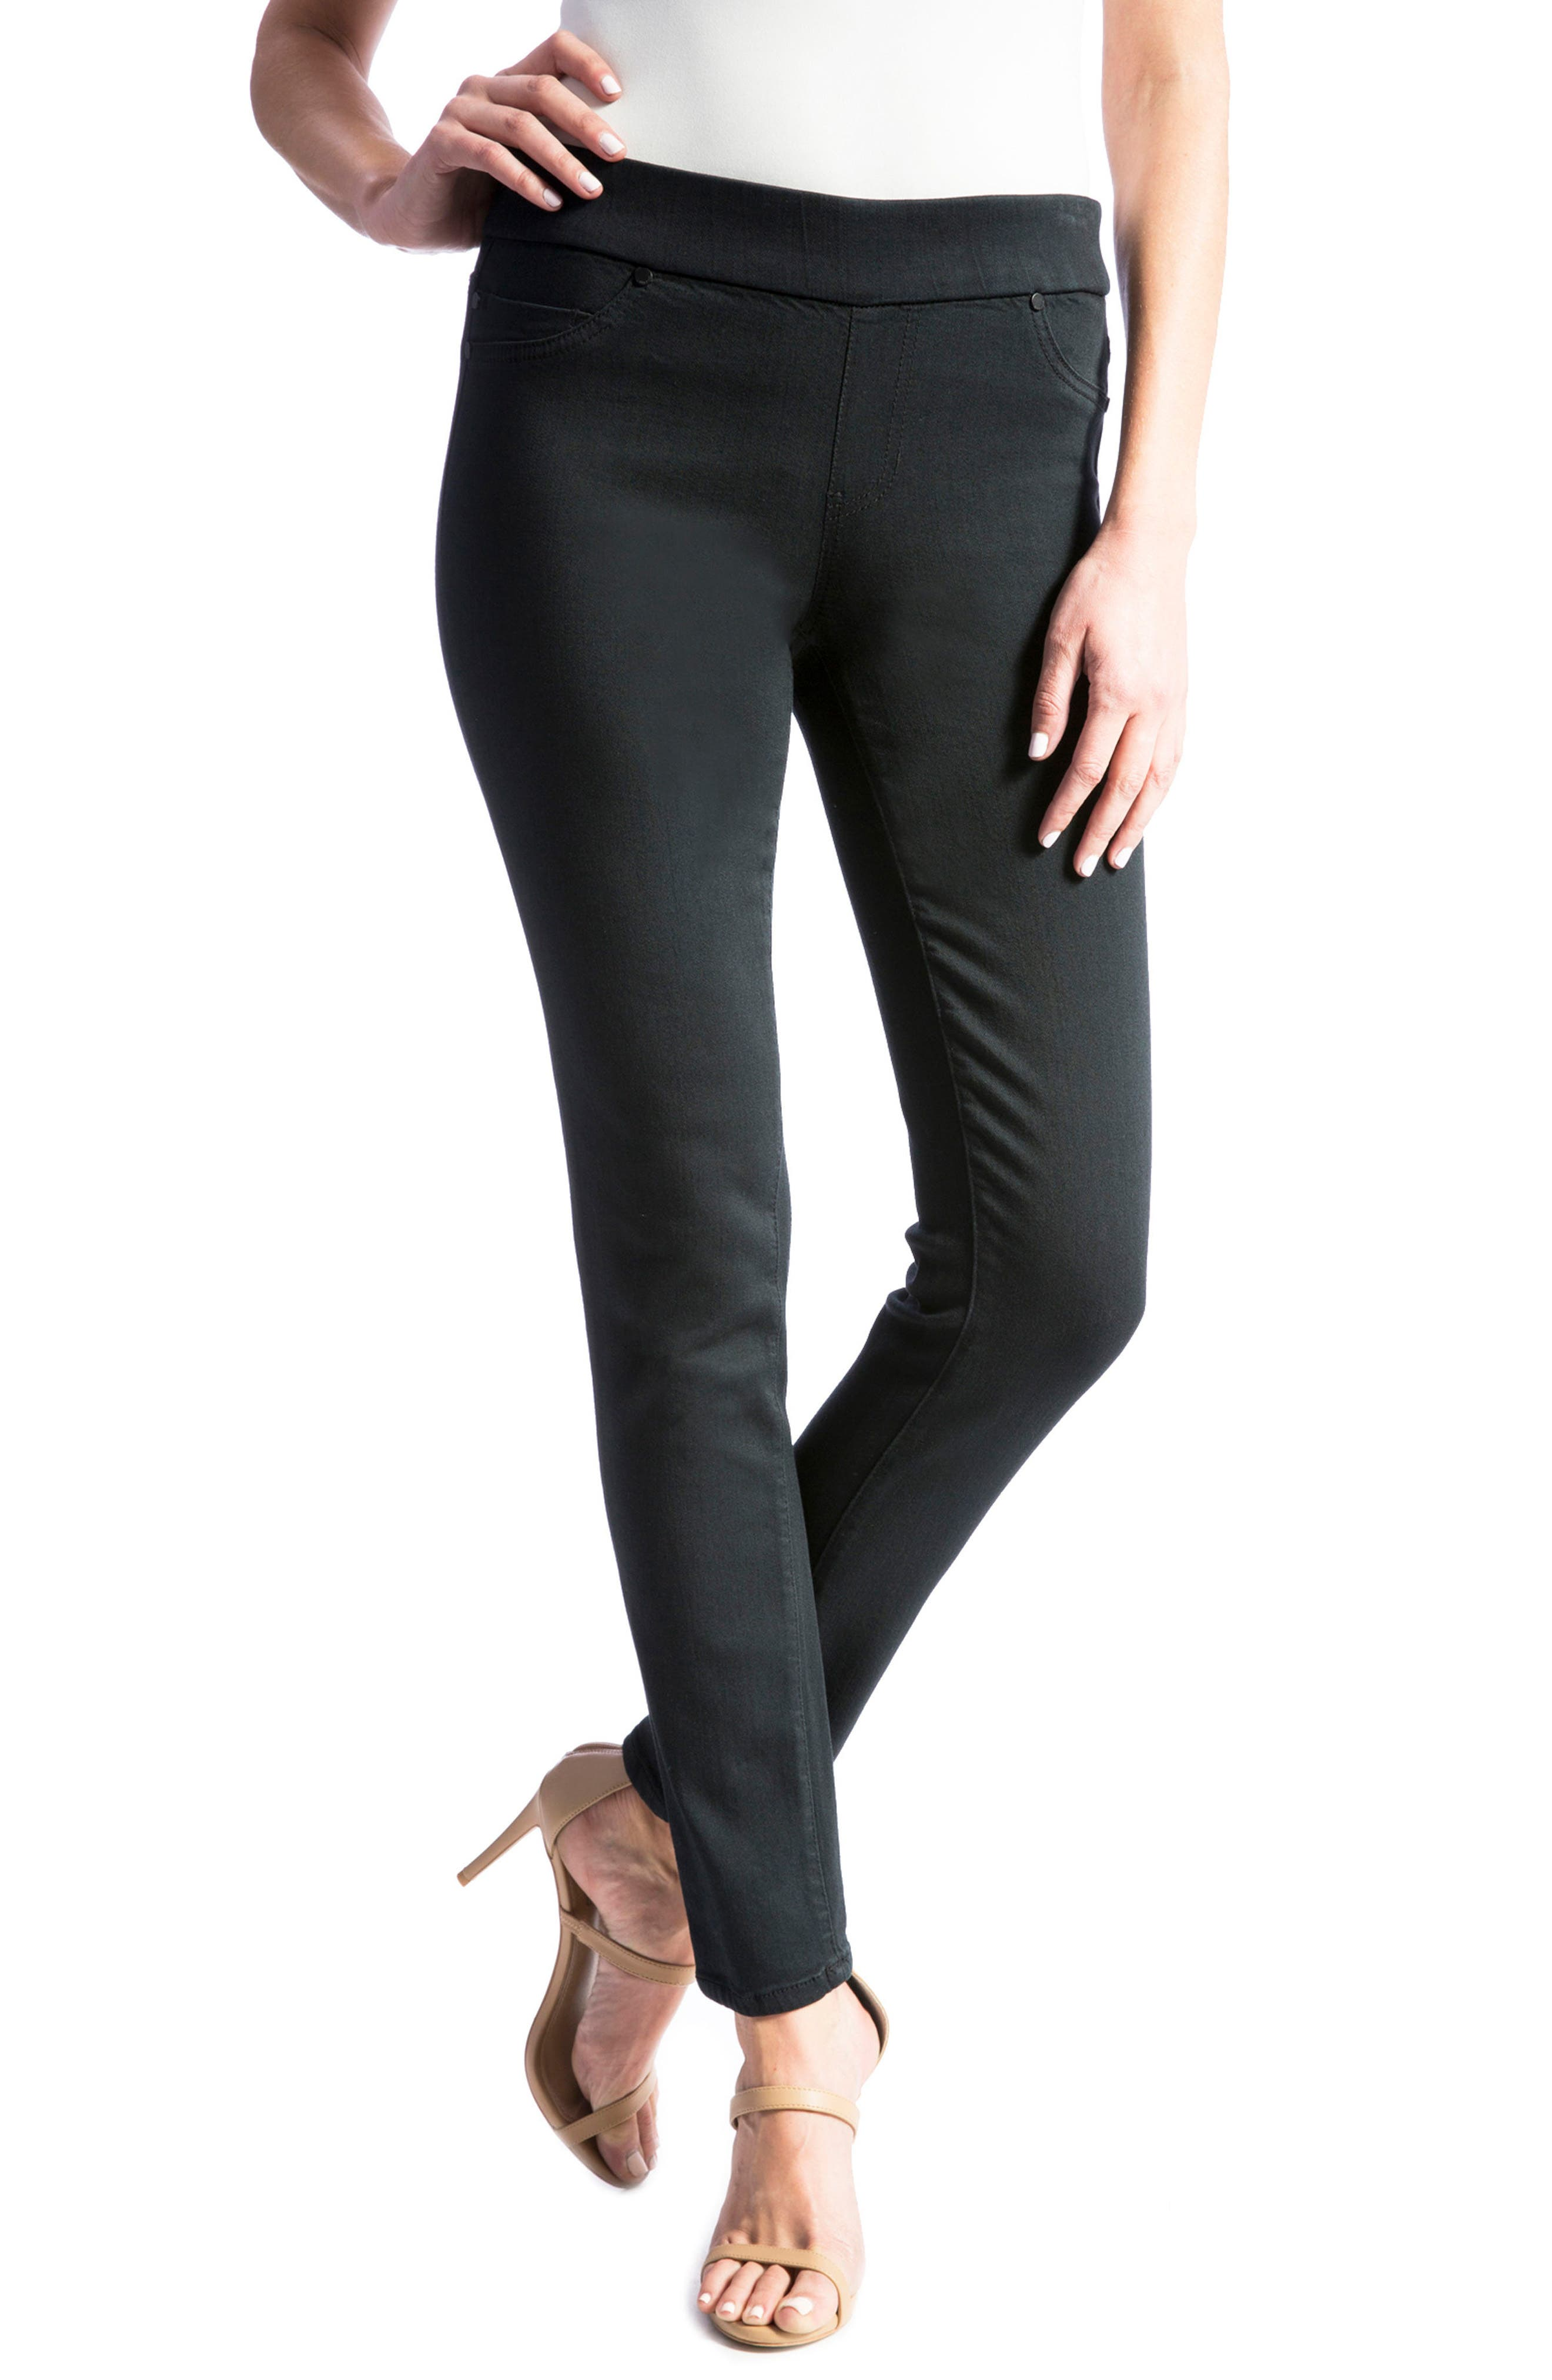 Jeans Company Sienna Mid Rise Soft Stretch Denim Leggings,                             Main thumbnail 1, color,                             Indigo Overdye Black